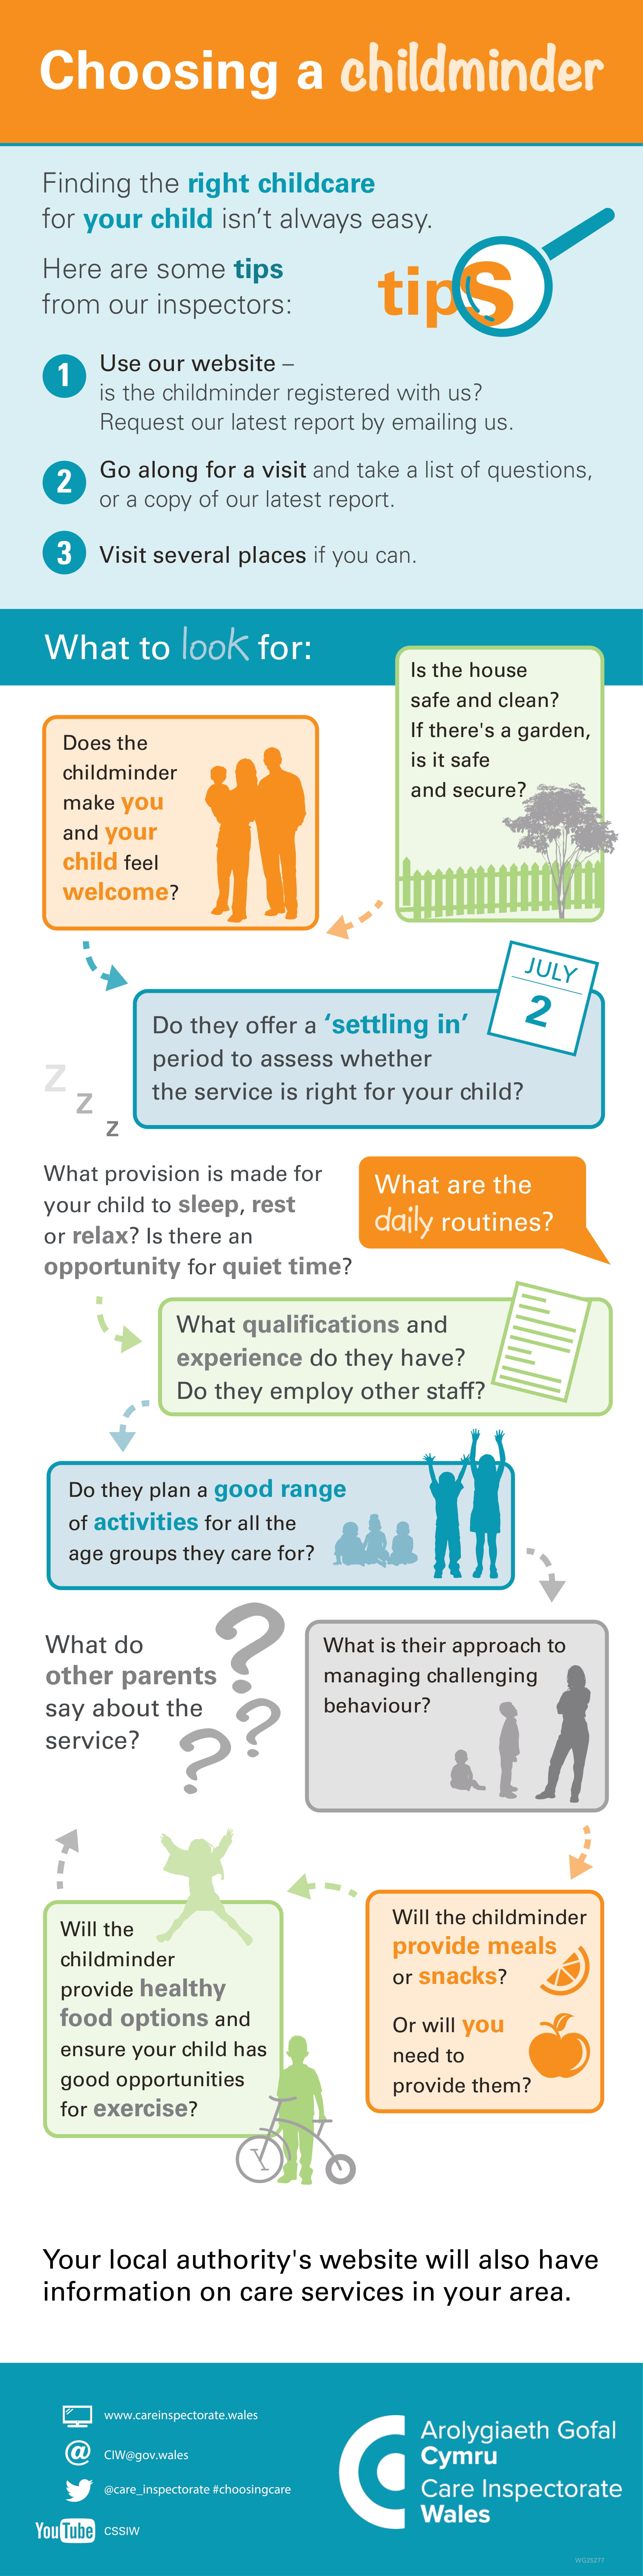 Choosing a childminder infographic